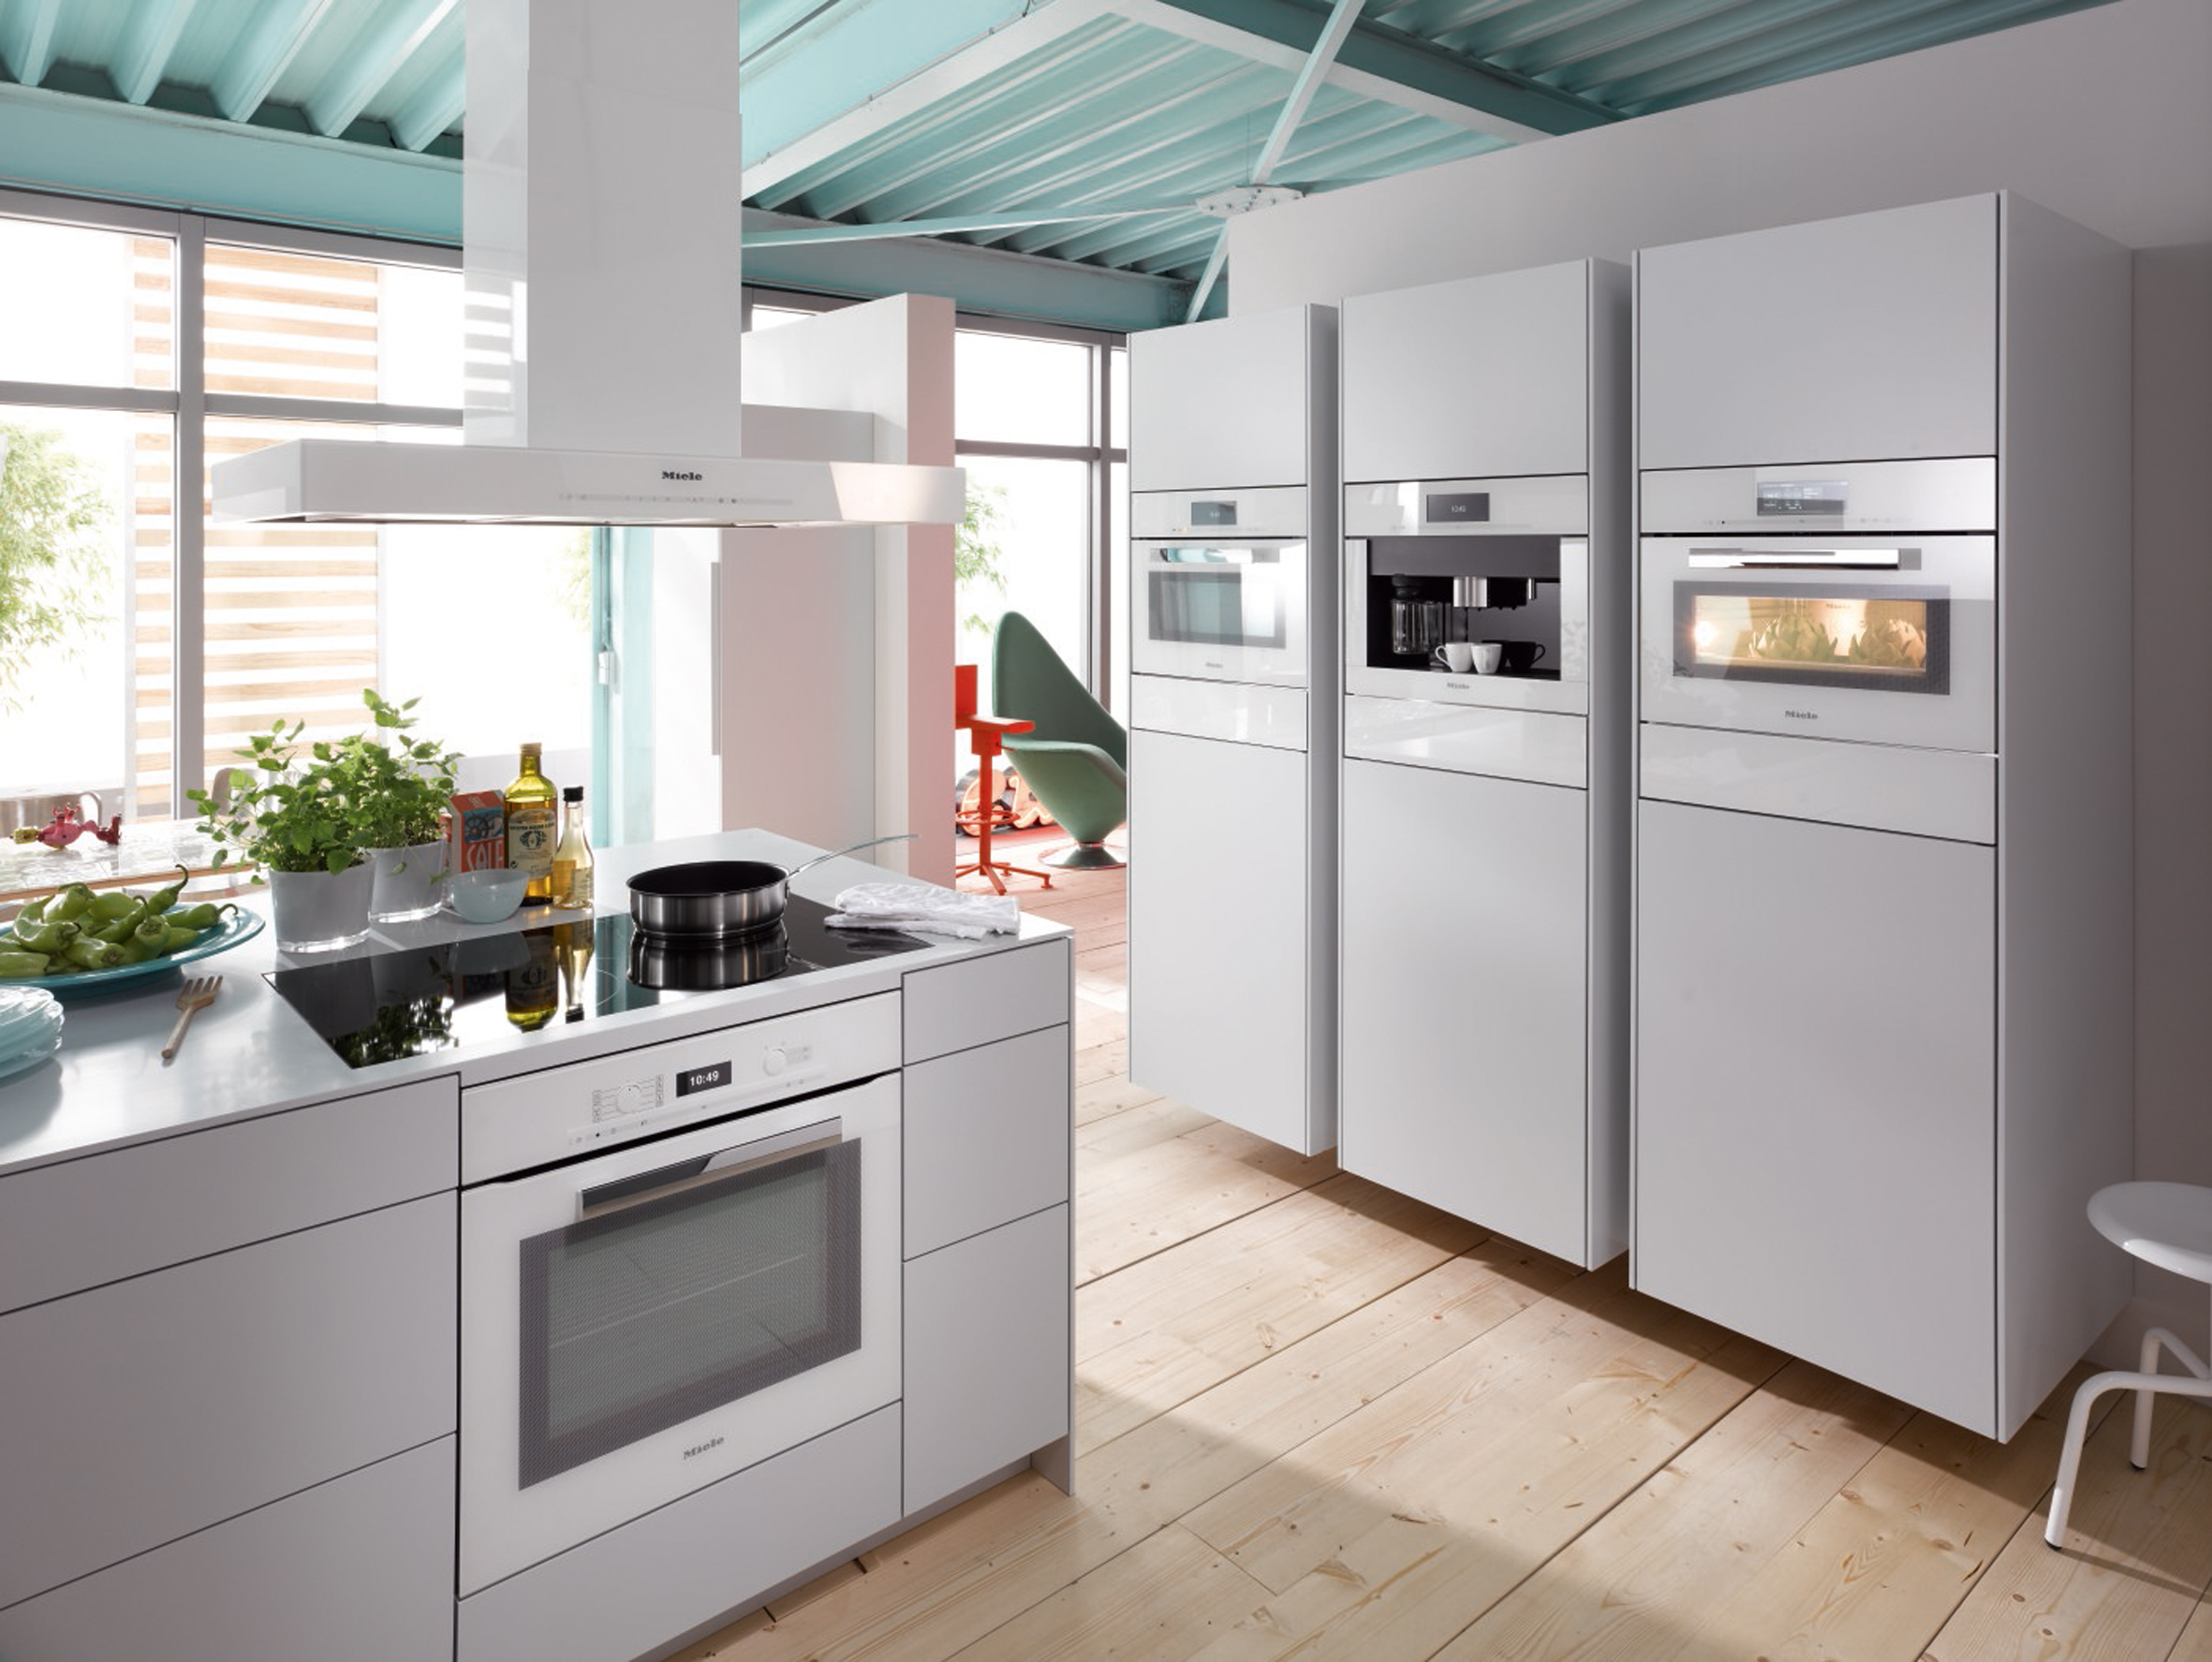 Miele Brilliant White Appliances